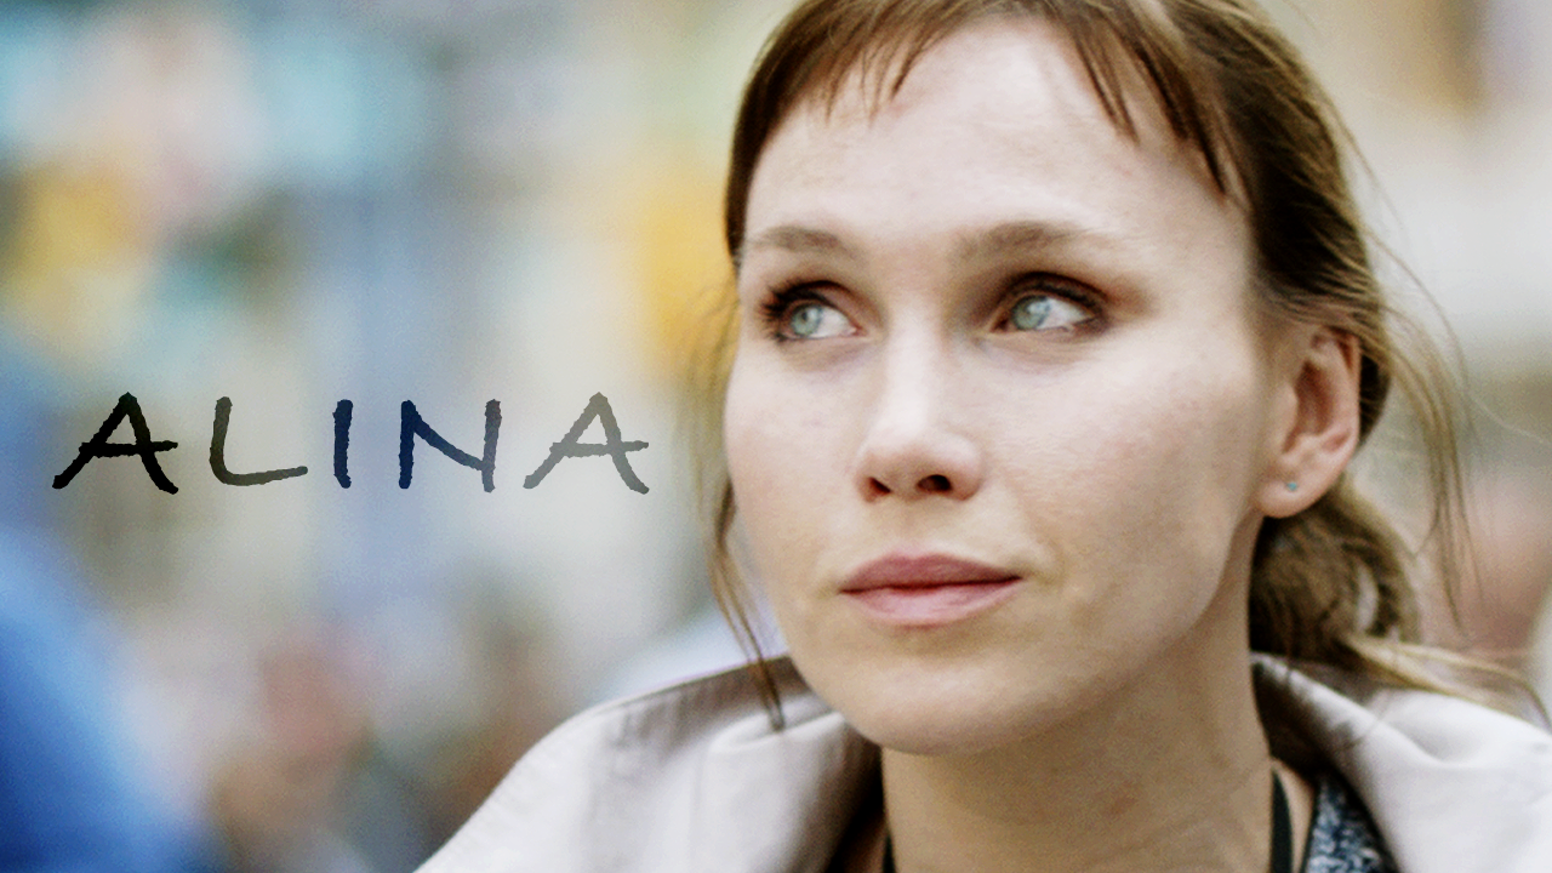 Alina is the first fiction film by celebrated indie exhibitor, distributor producer and father of the Midnight Movie, Ben Barenholtz